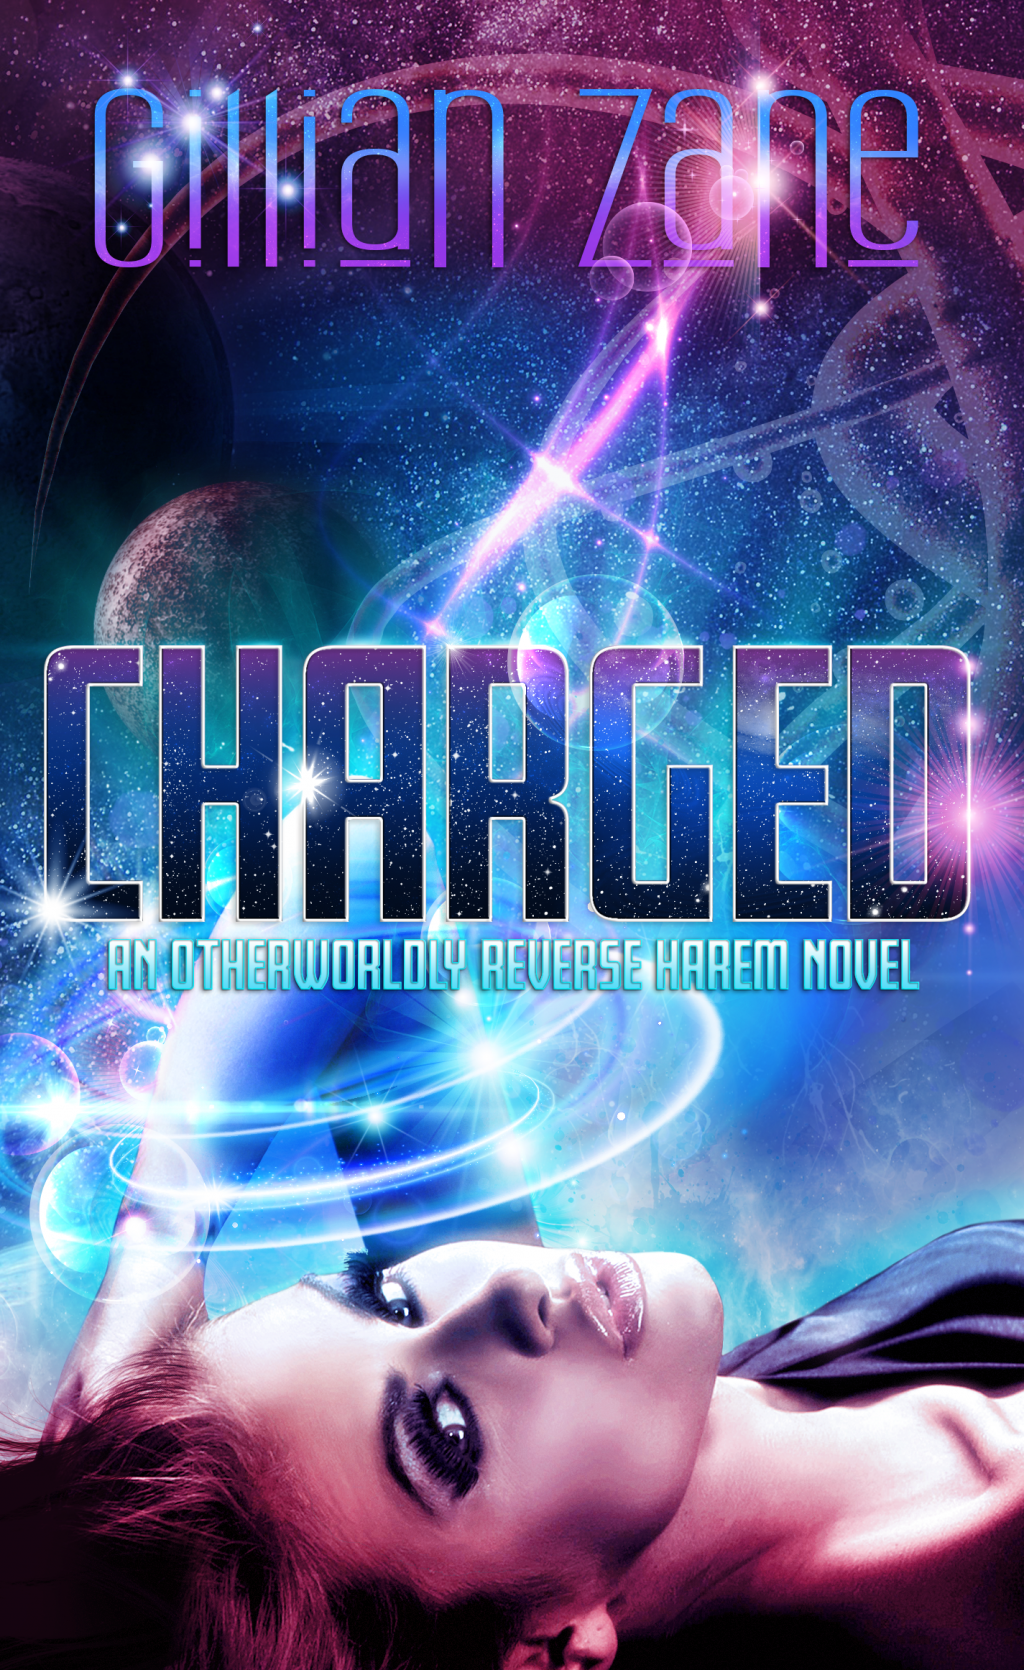 CHARGED by Gillian Zane